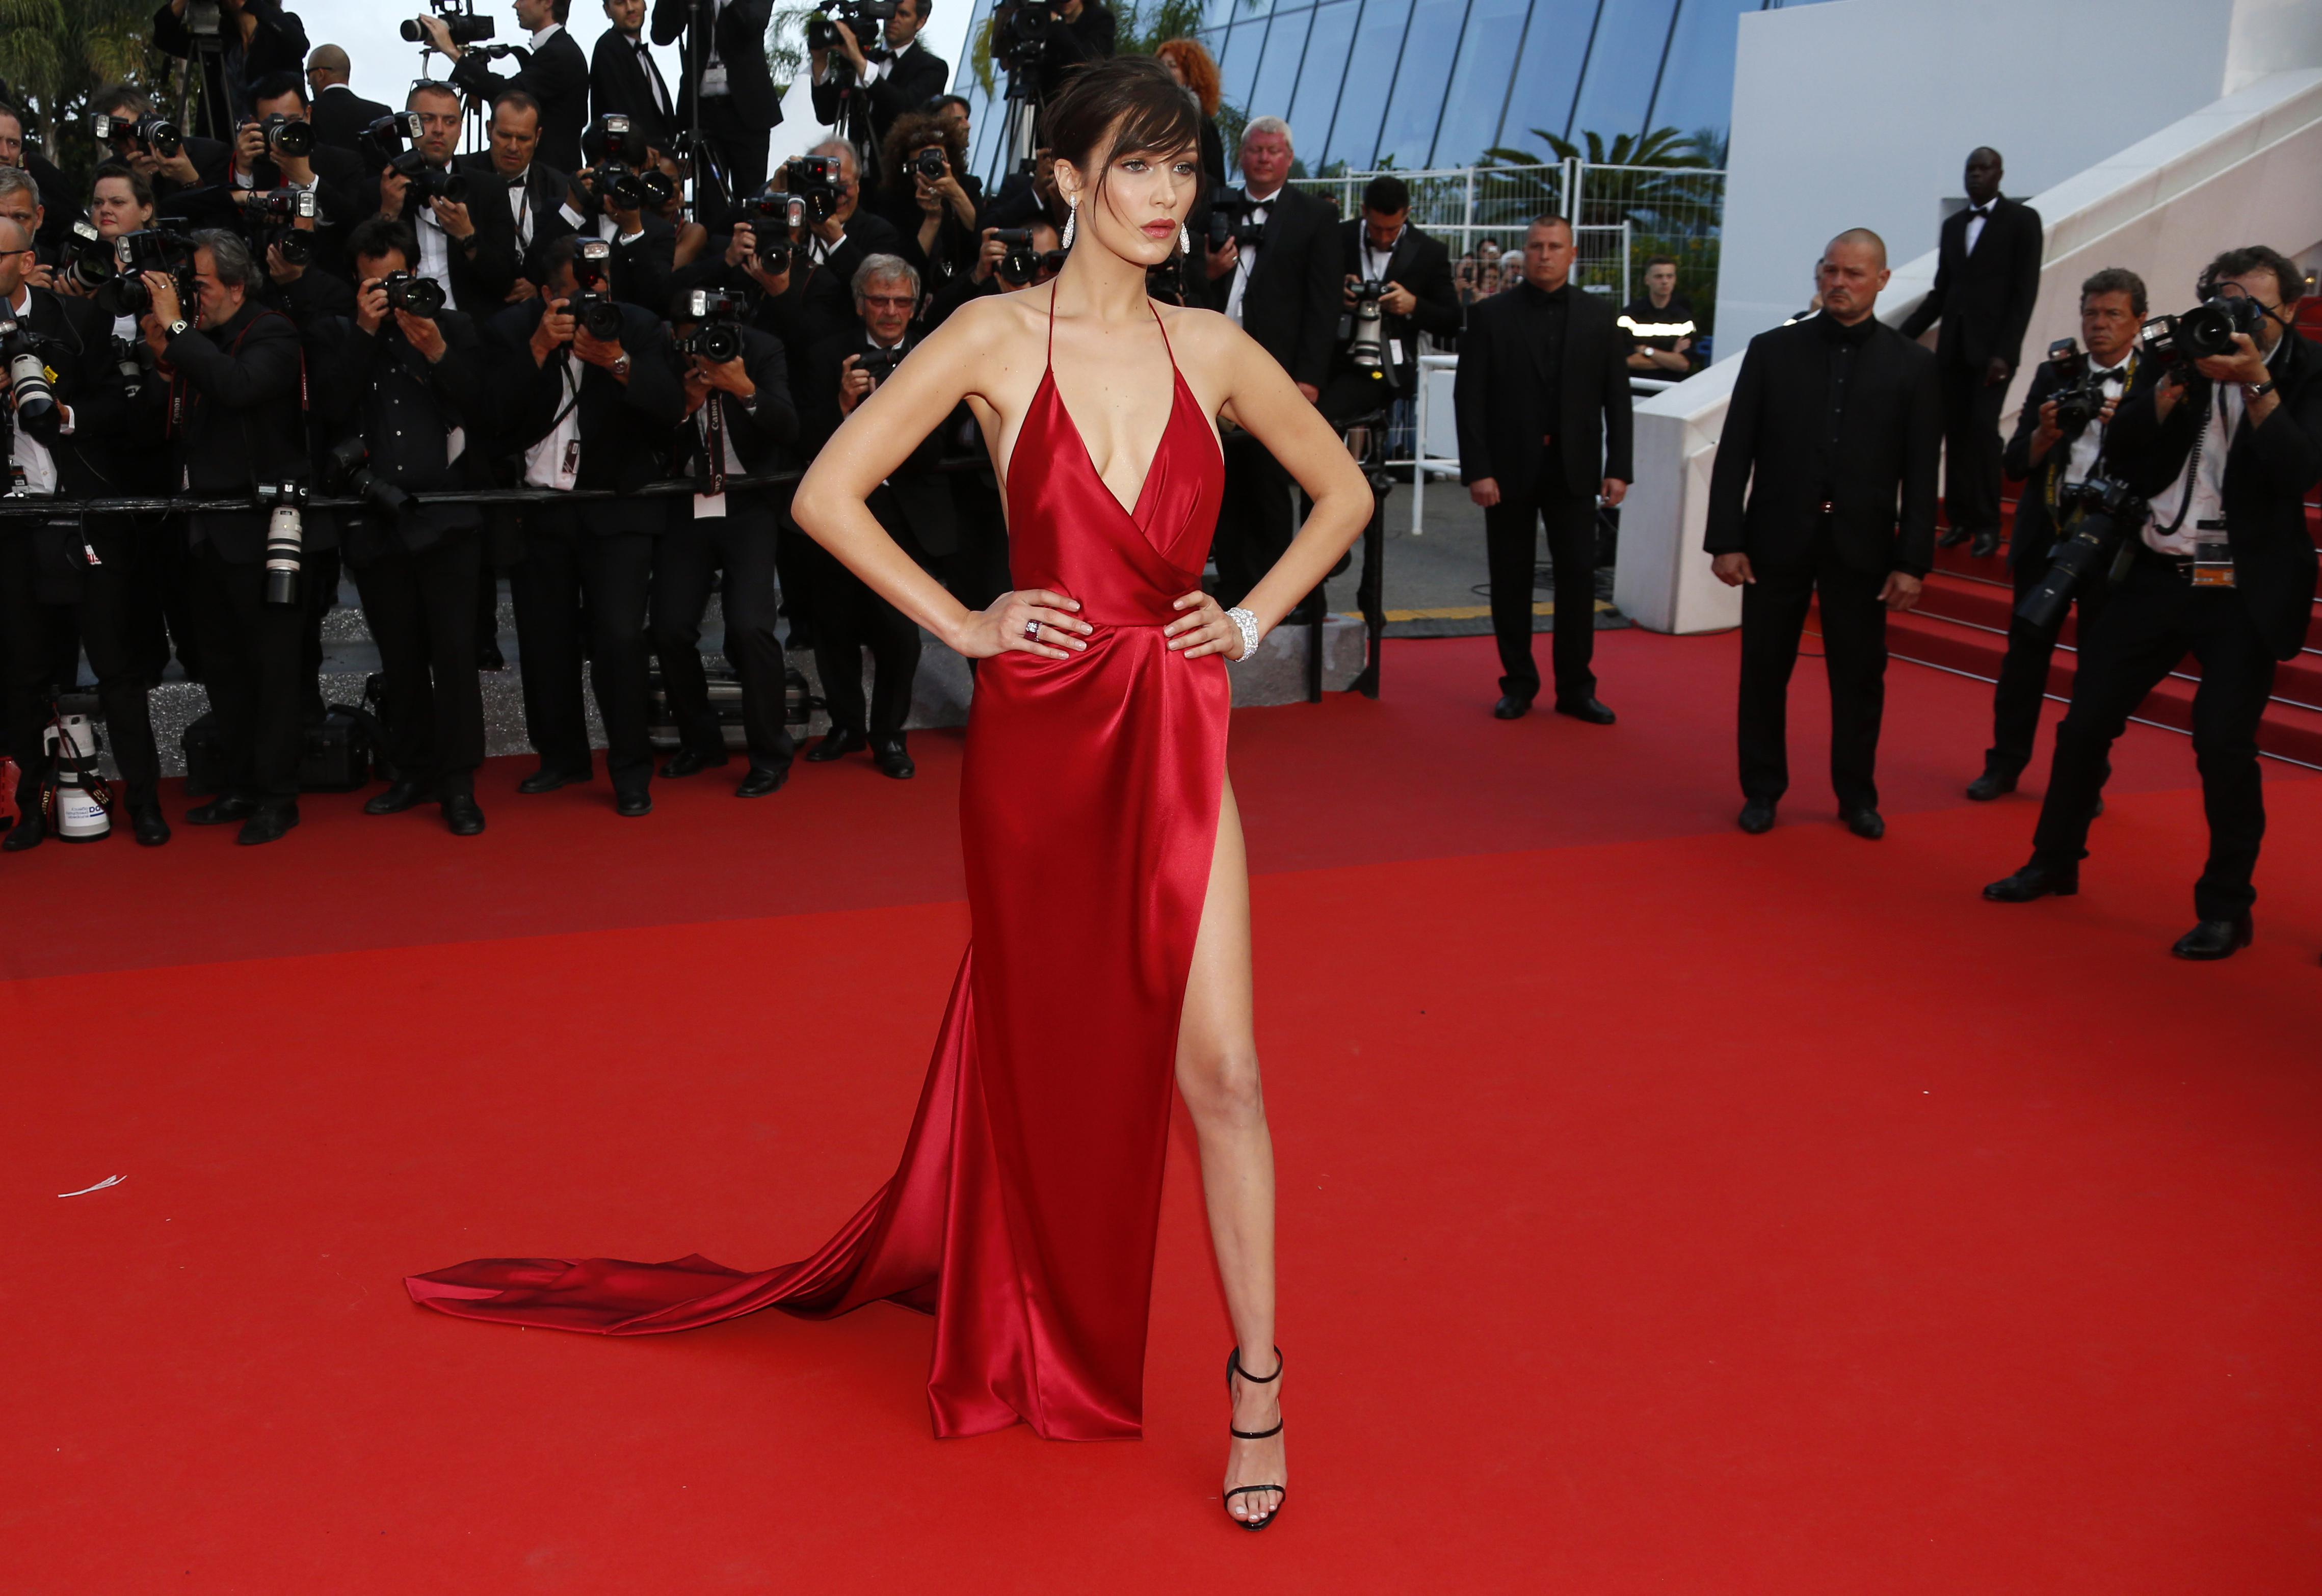 Model Bella Hadid poses on the red carpet at the 69th Cannes Film Festival